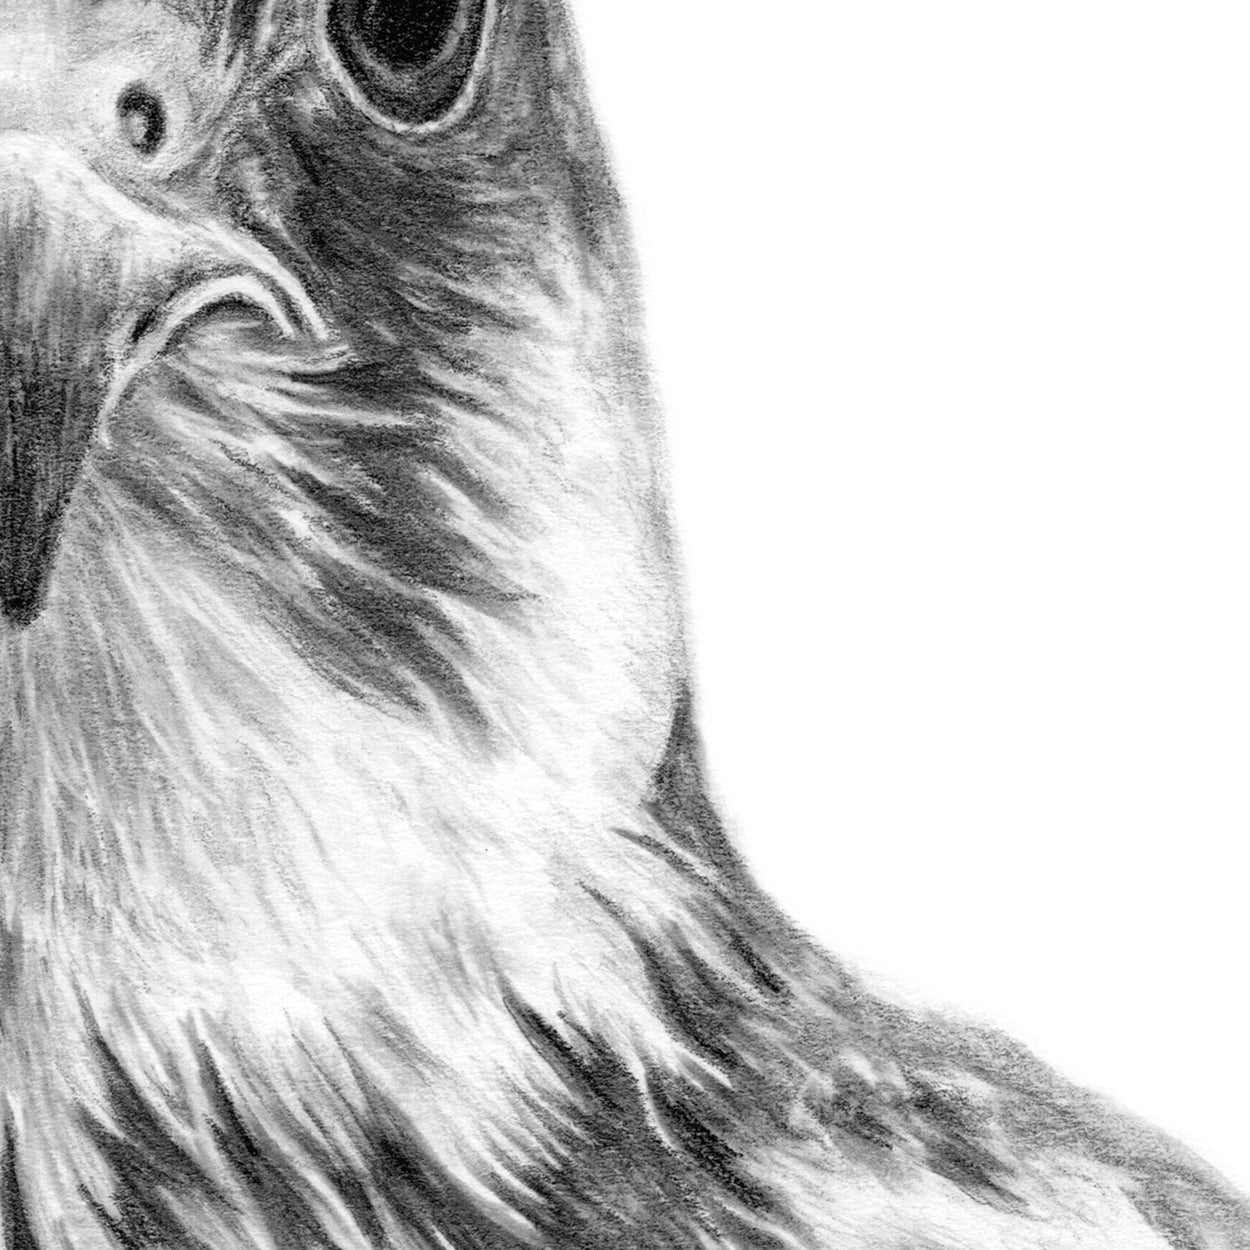 Bird of Prey Pencil Drawing Close-up - The Thriving Wild